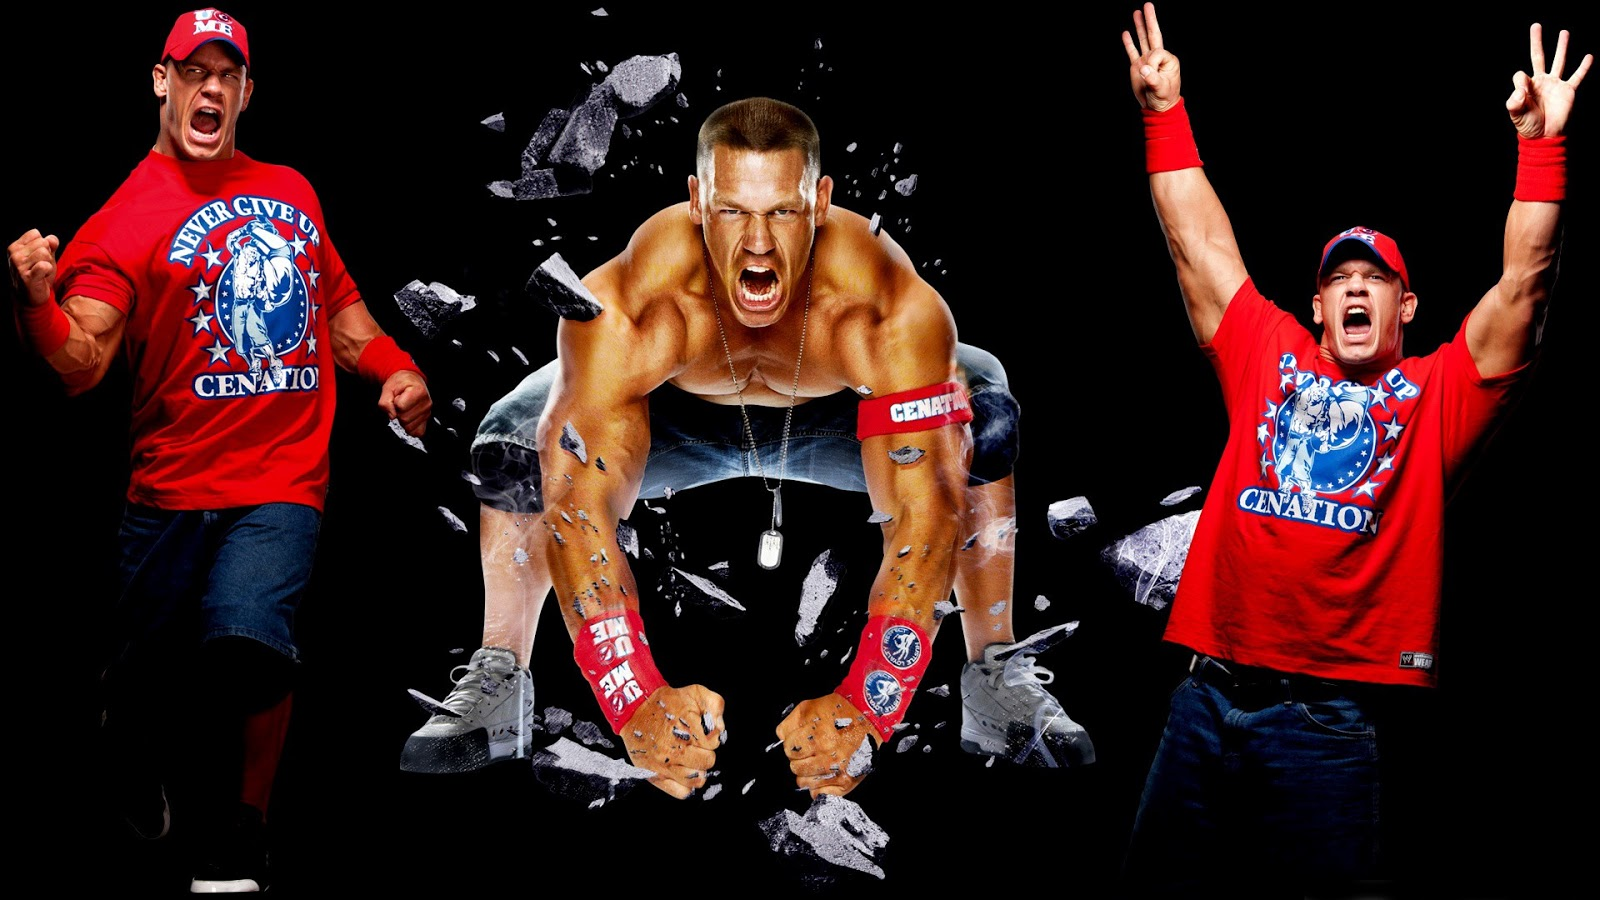 John Cena New Hd Wallpaper 2013